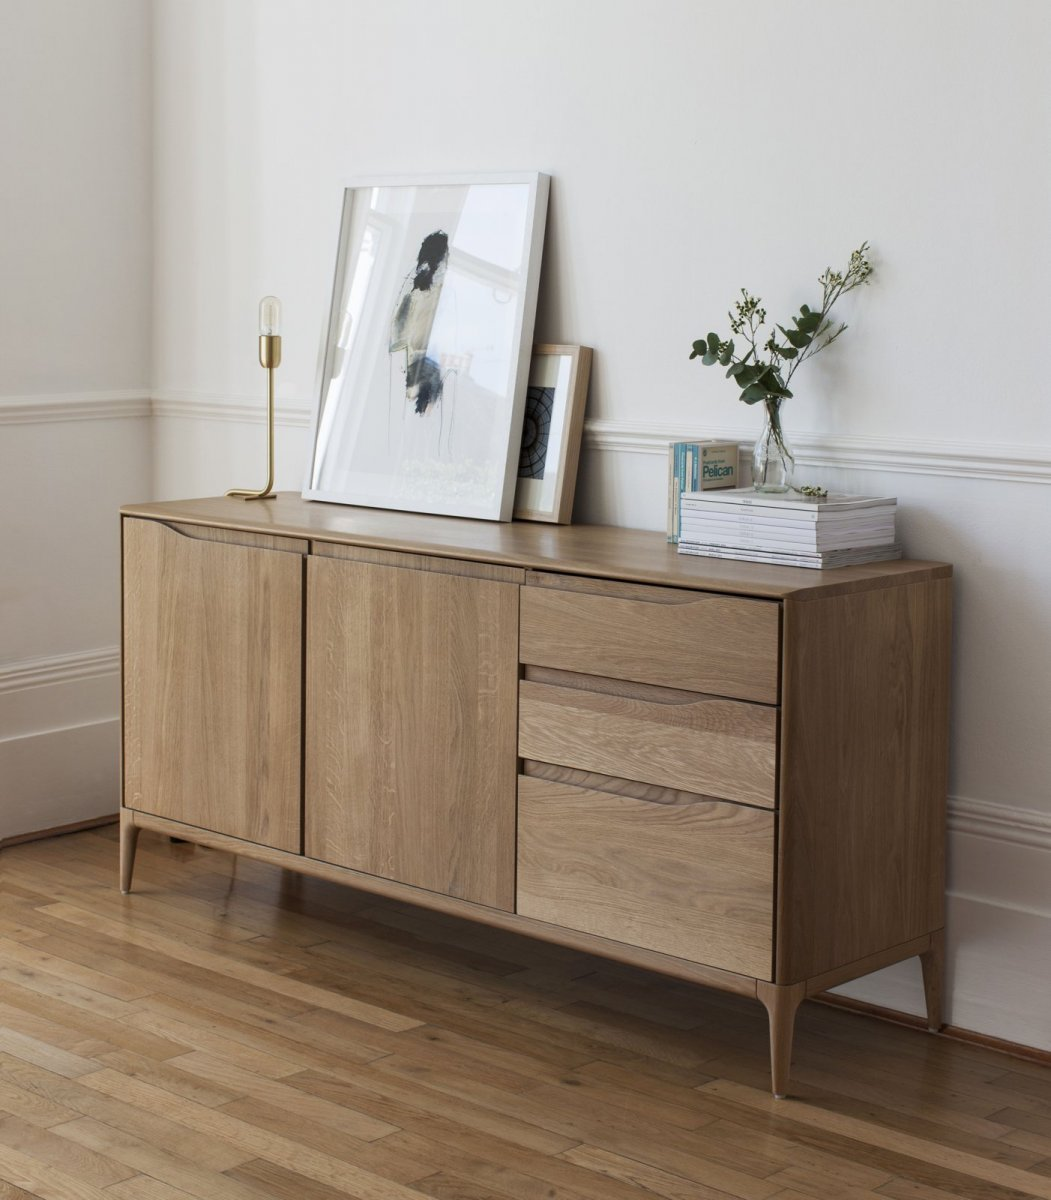 Romana Large Sideboard.